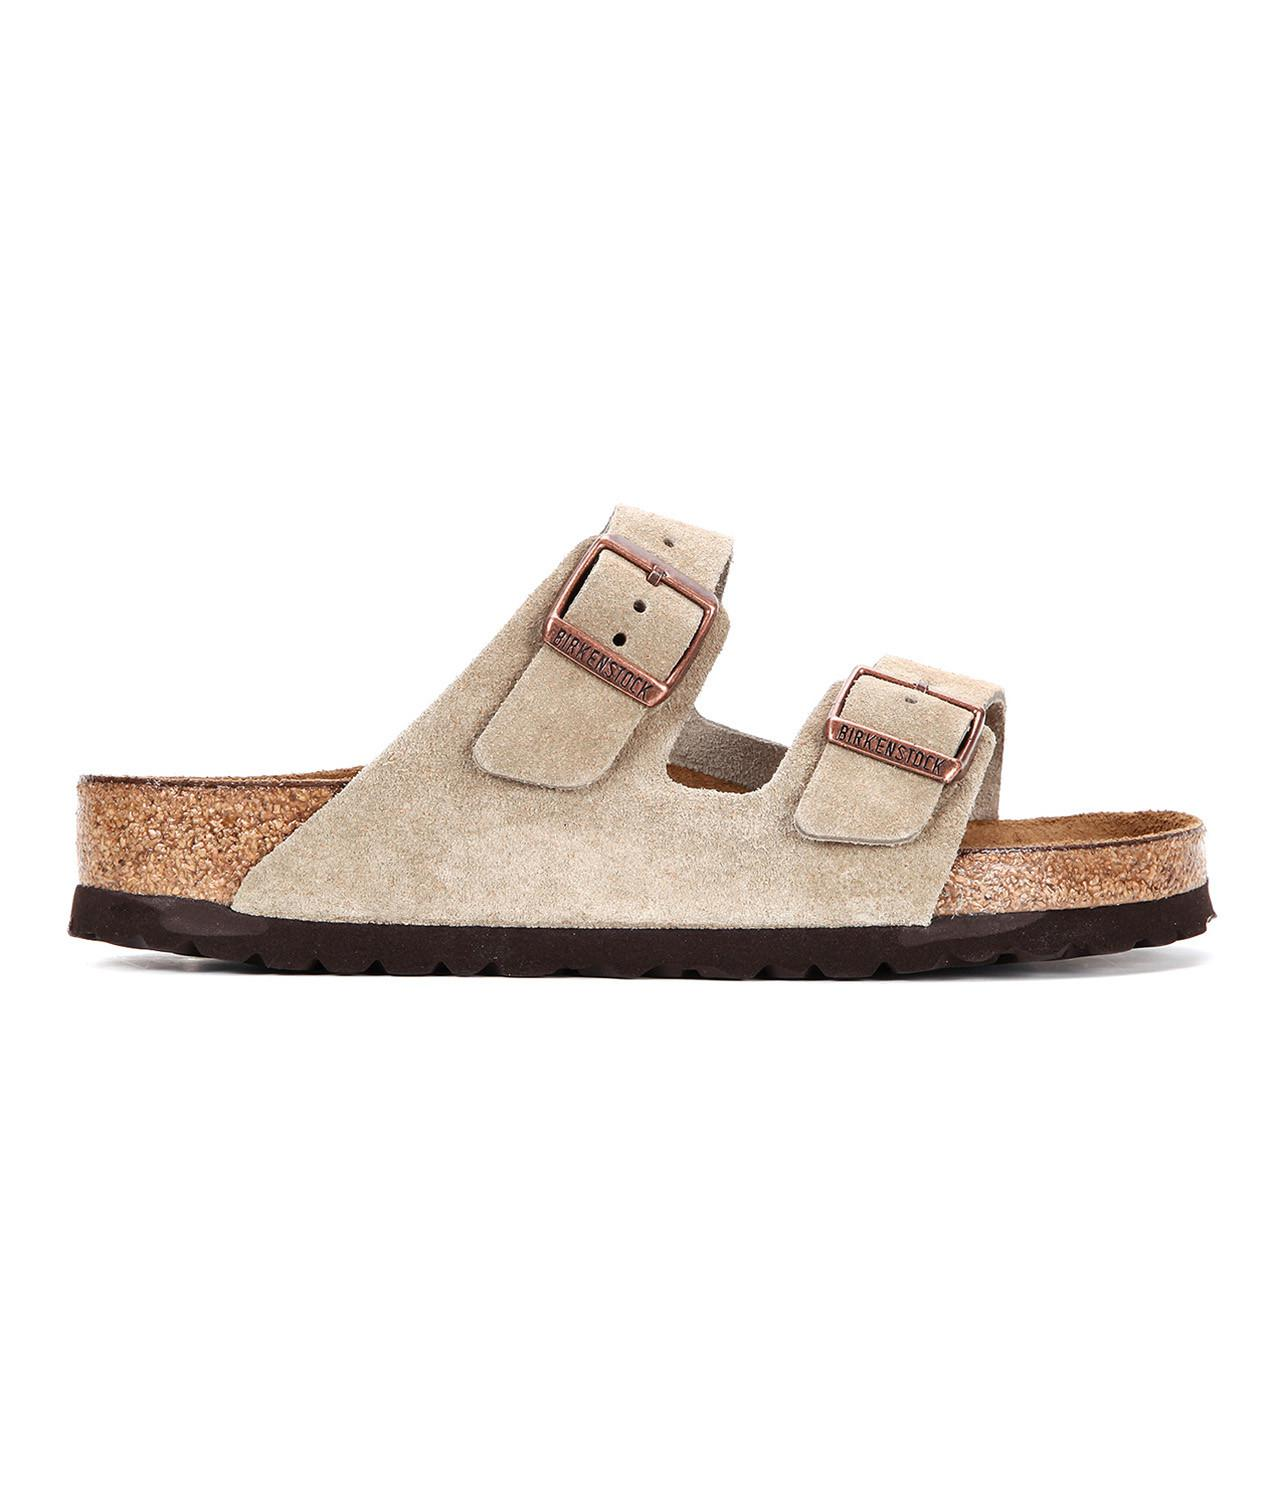 02321a6a01e5 Birkenstock - Brown Arizona Soft Footbed Suede for Men - Lyst. View  fullscreen